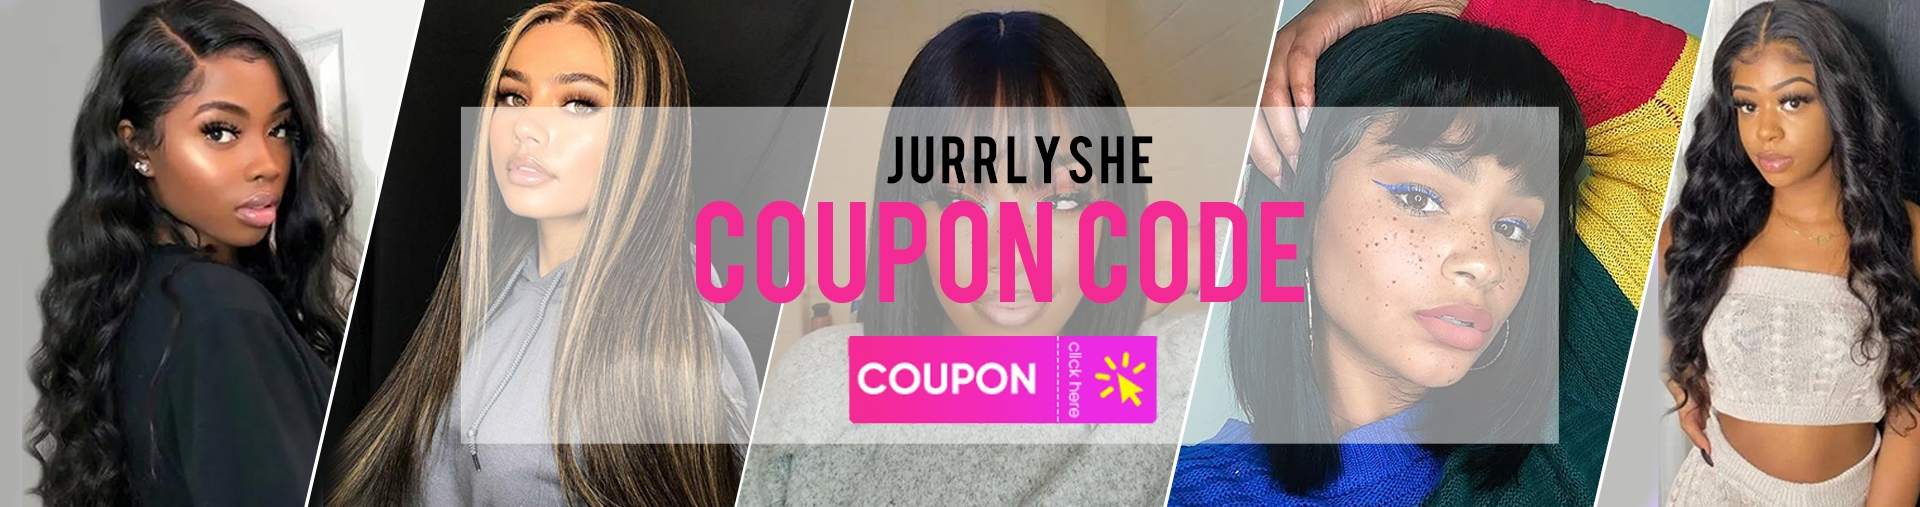 AfricanMall Coupon Code Sharing For Customer